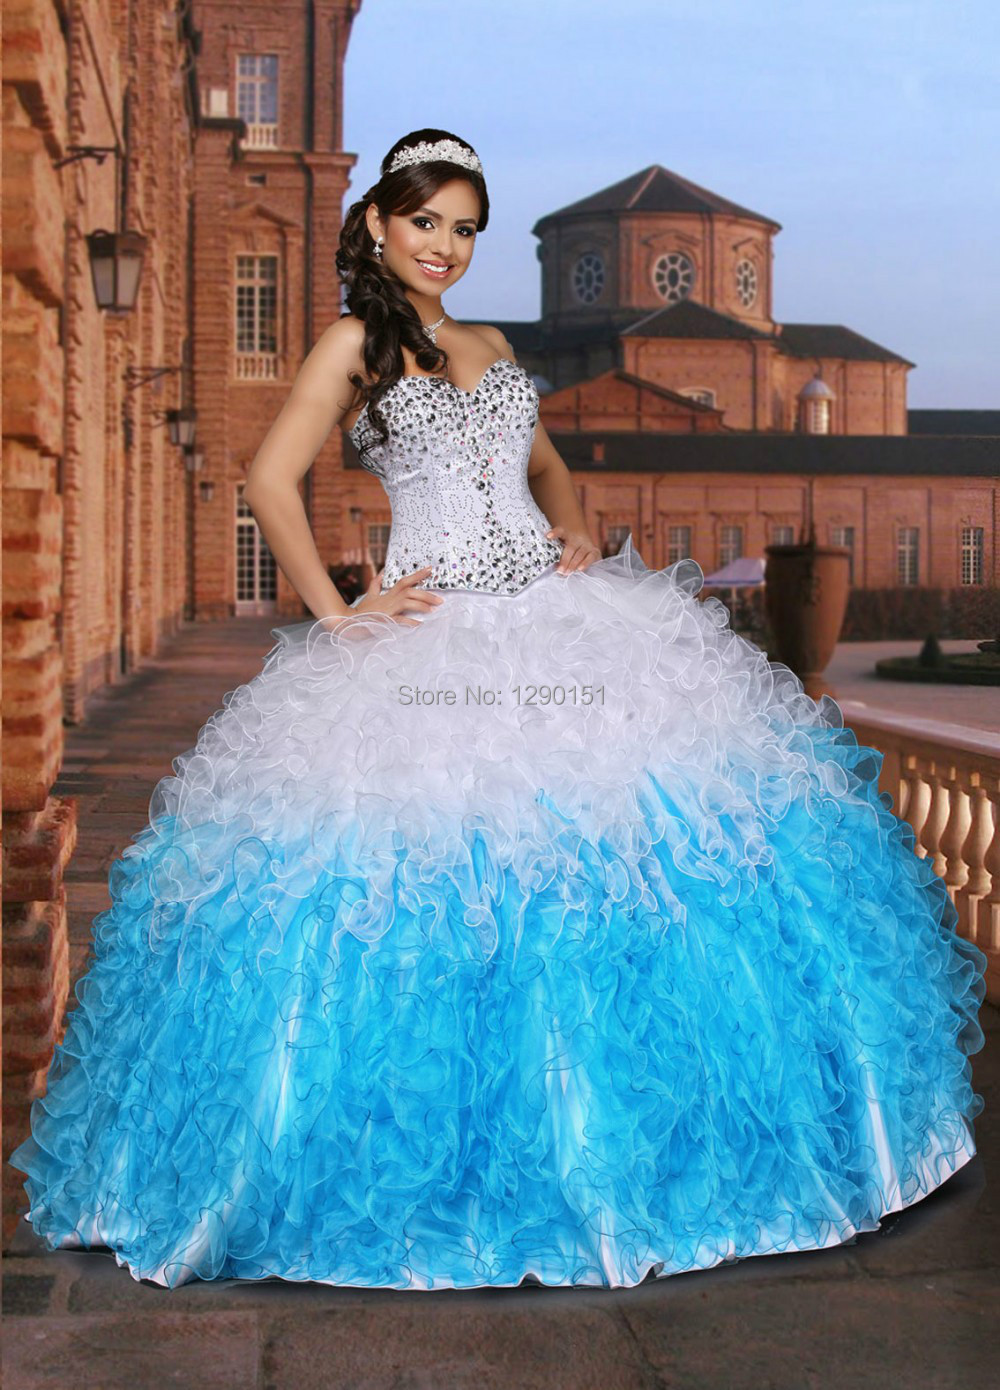 New Unique 2014 White/Blue Quinceanera Dresses 15 years Ruffled ...